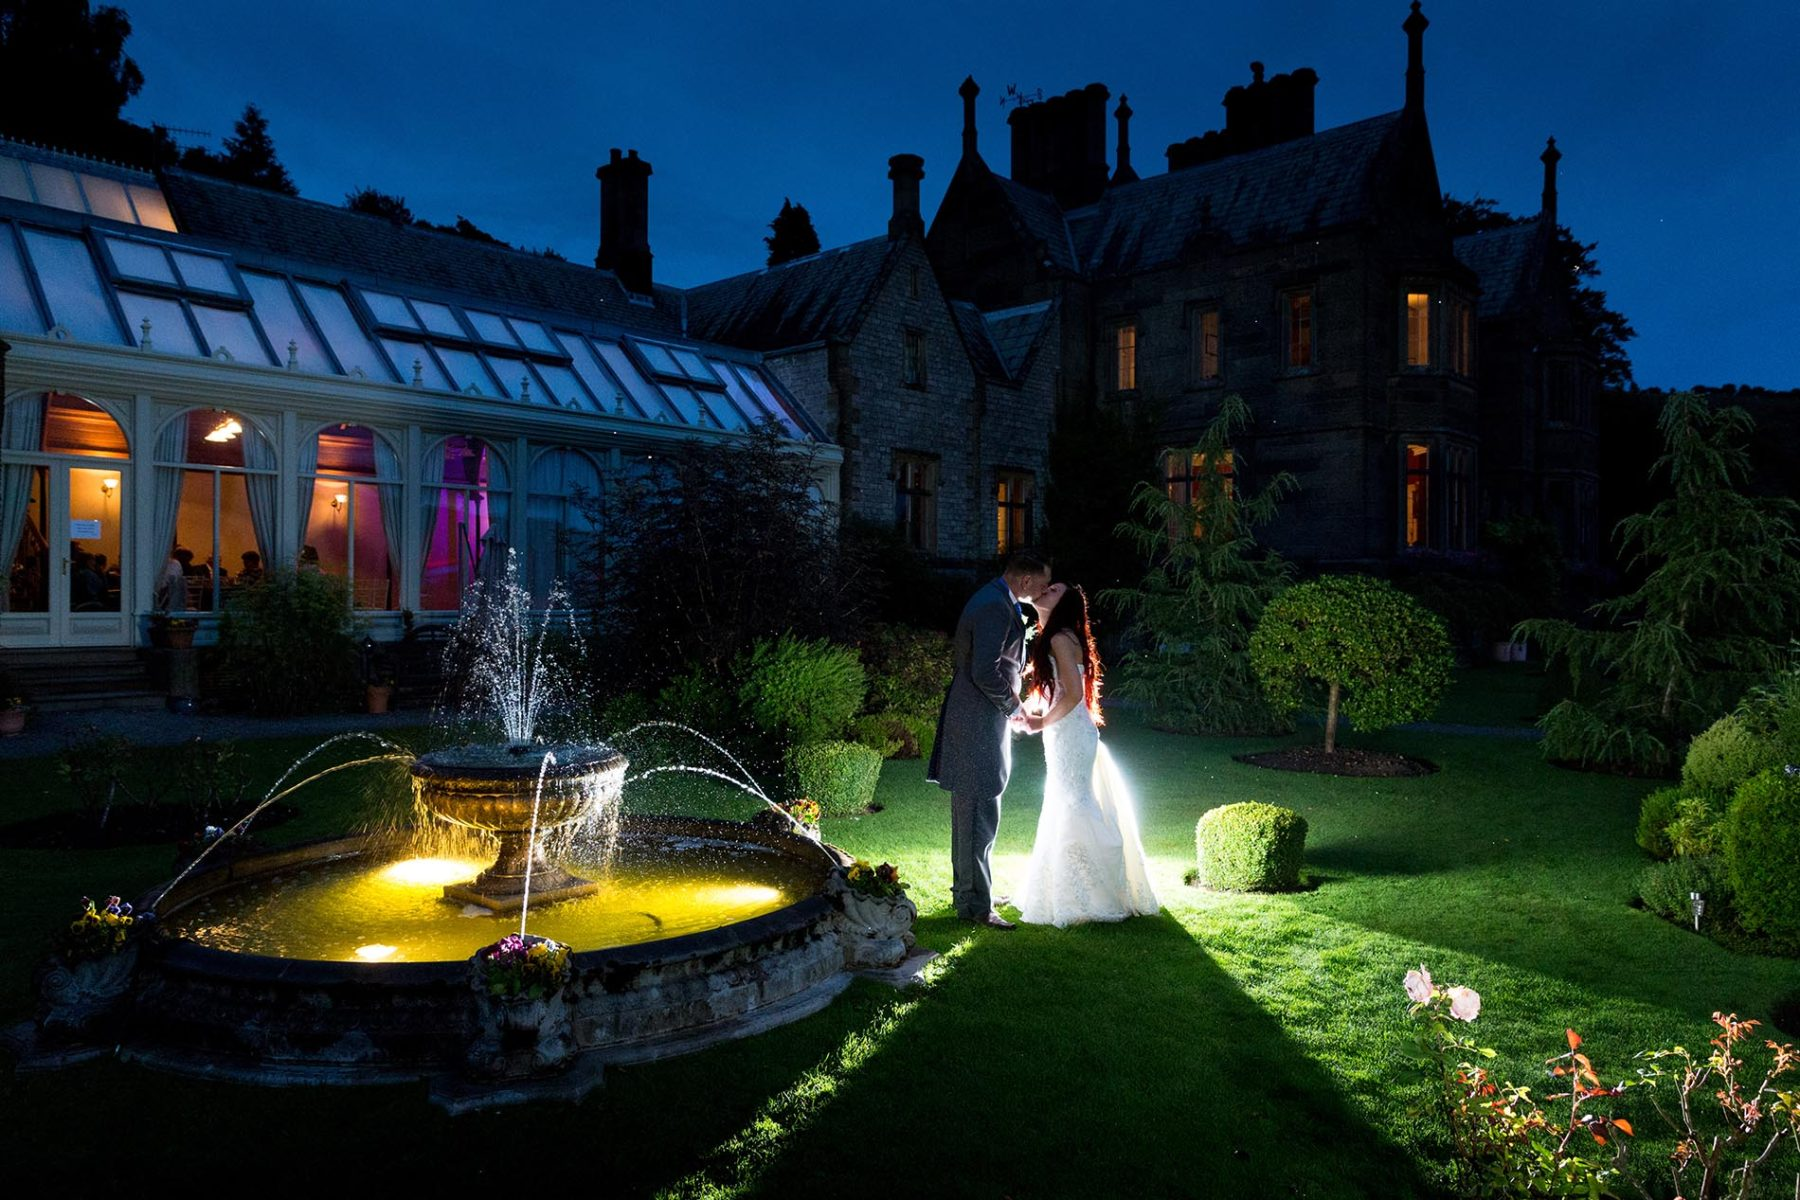 stunning late night wedding photo in cheshire